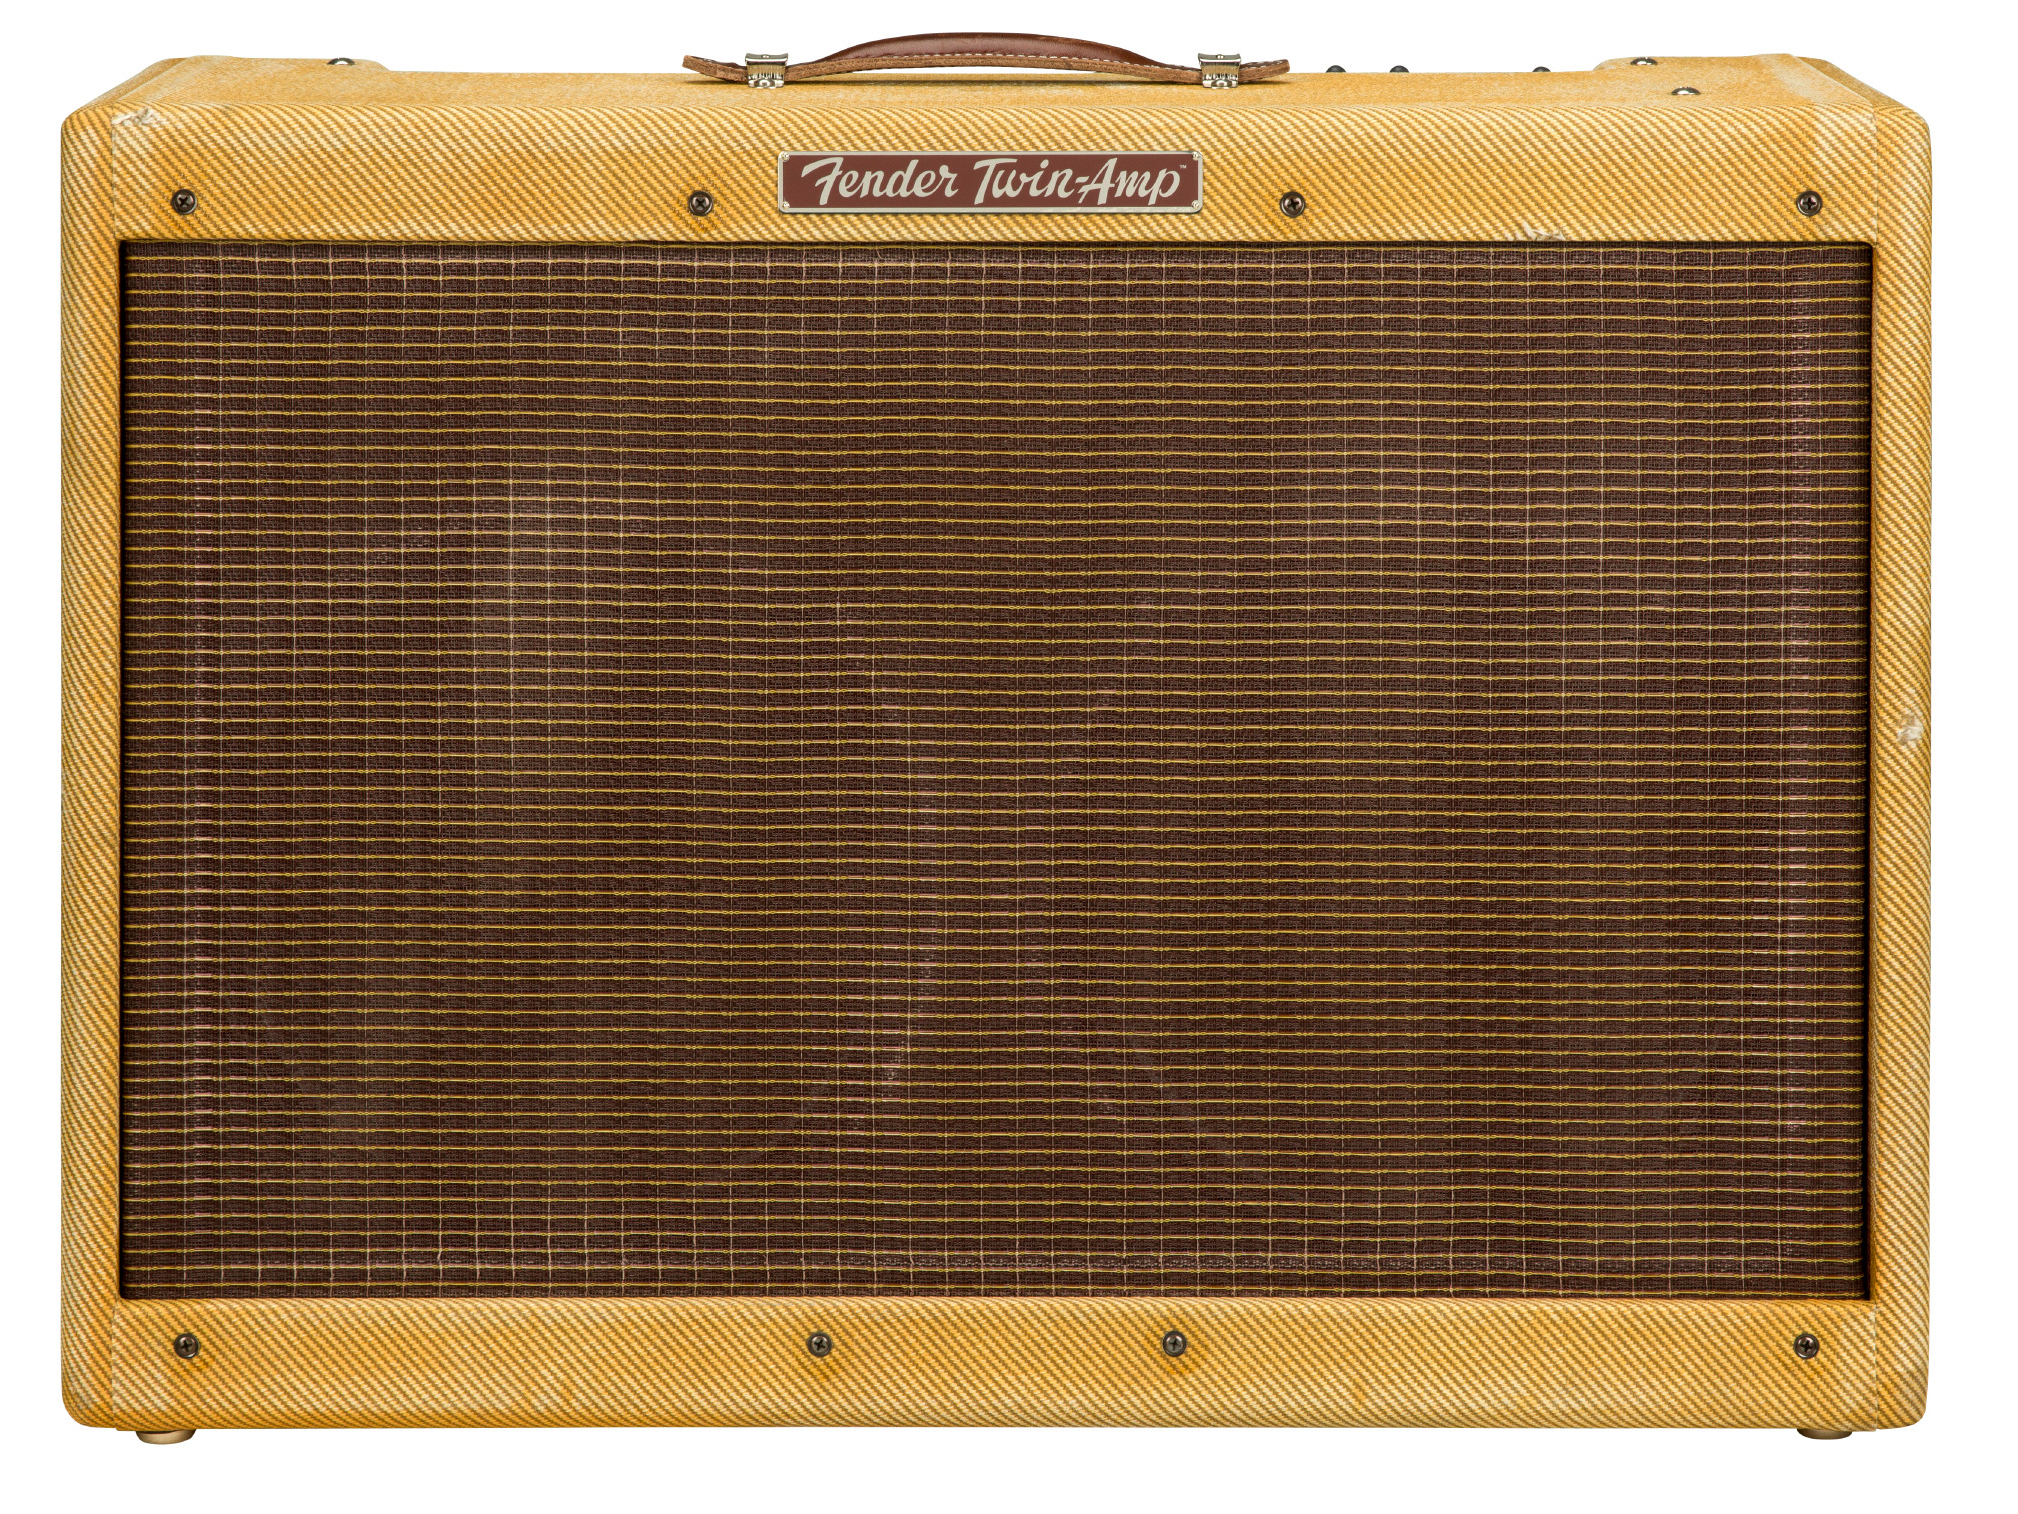 Fender '59 Twin Amp Joe Bonamassa Edition